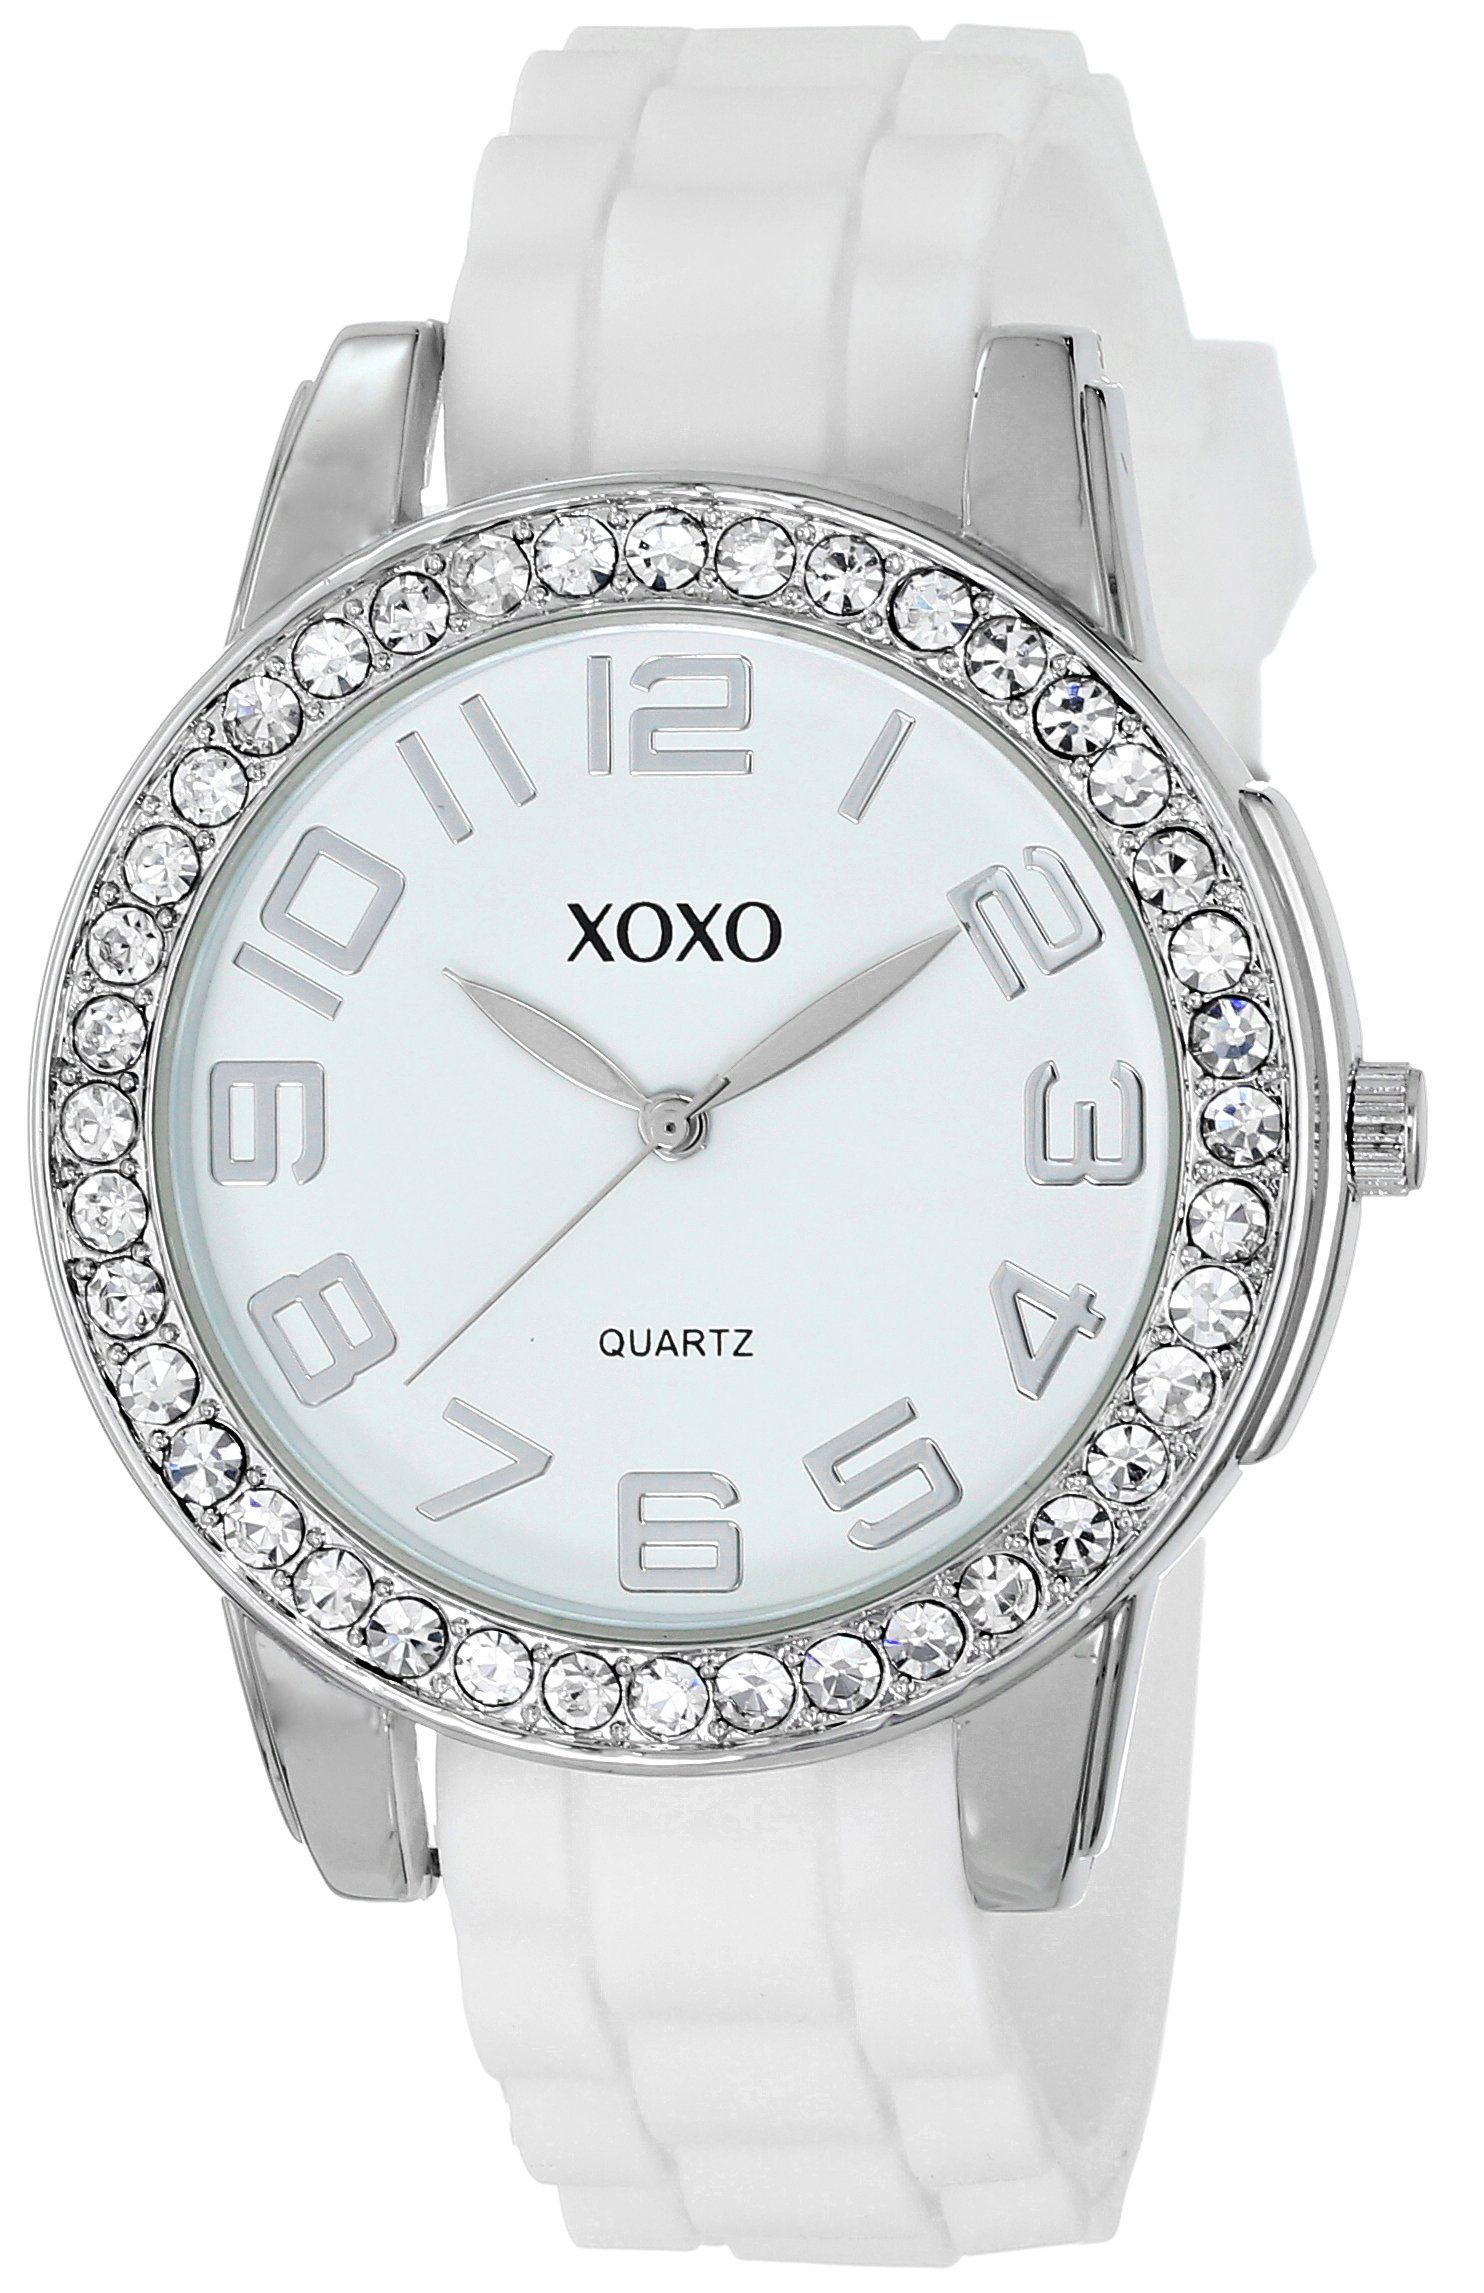 XOXO Womens Analog Watch with SilverTone Case CrystalInset